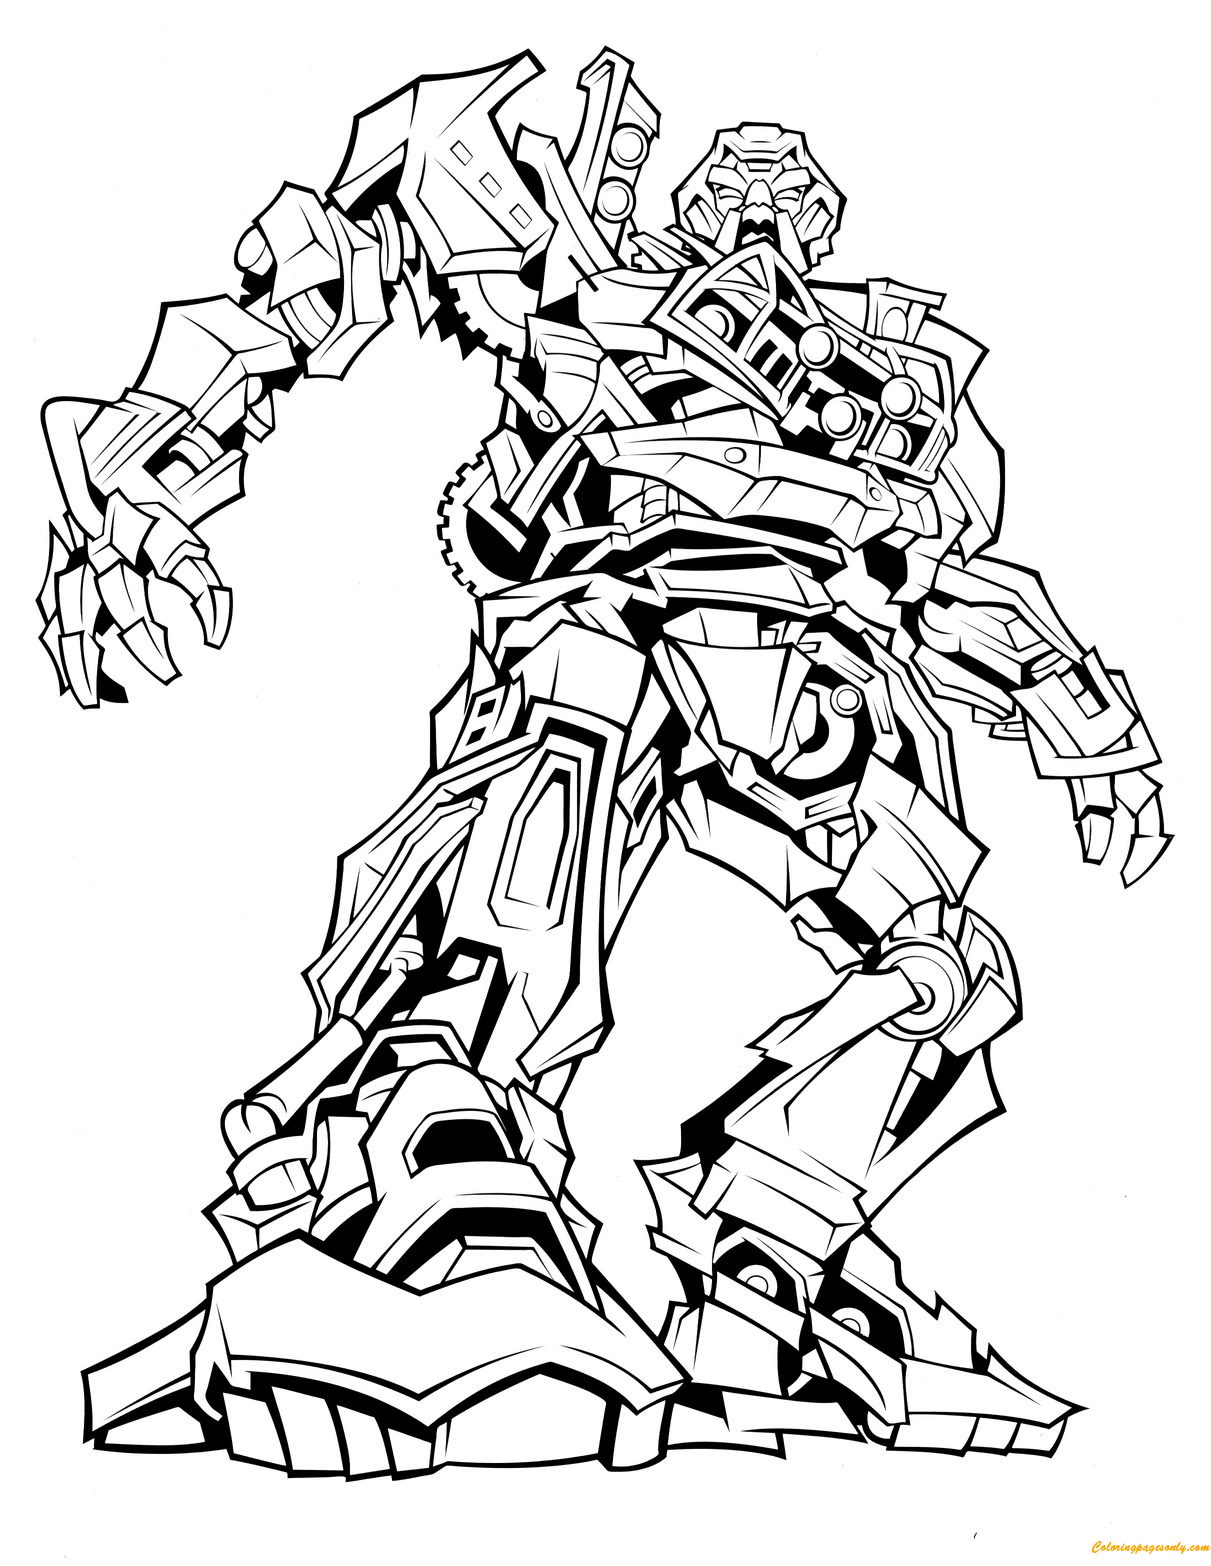 Ratchet from Transformers Coloring Page - Free Coloring ...